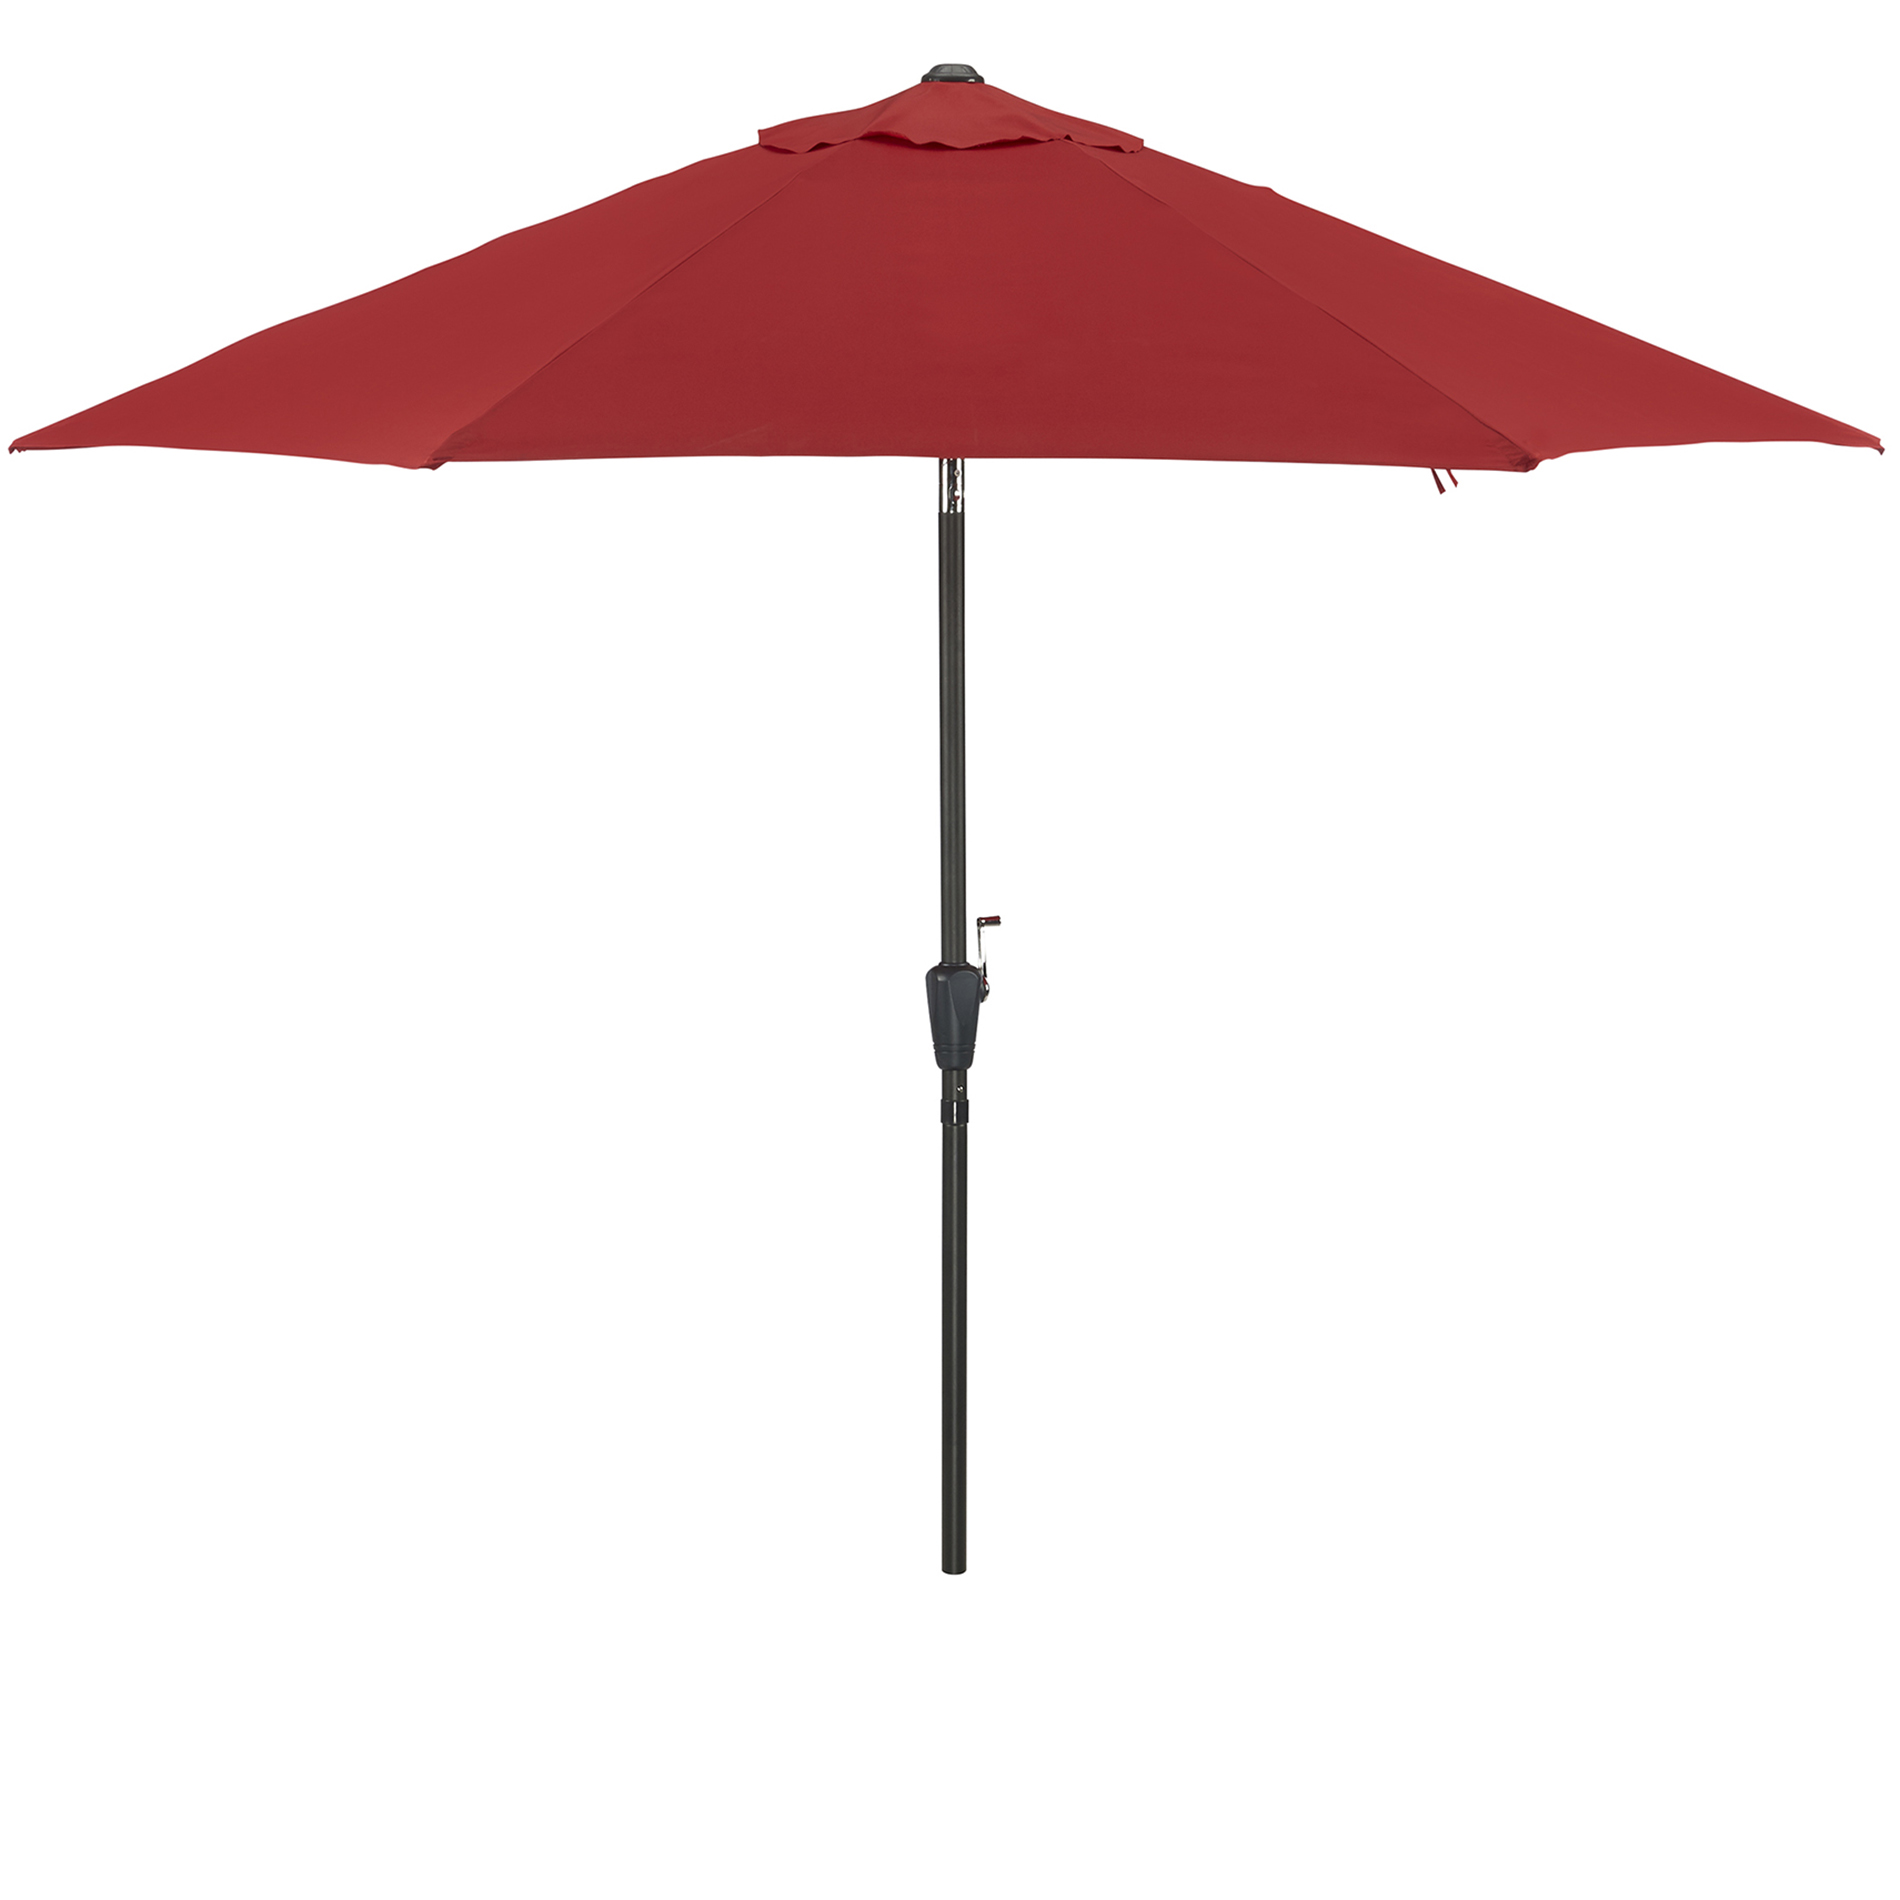 Image of Outdoor Garden Oasis 9' Patio Umbrella - Red